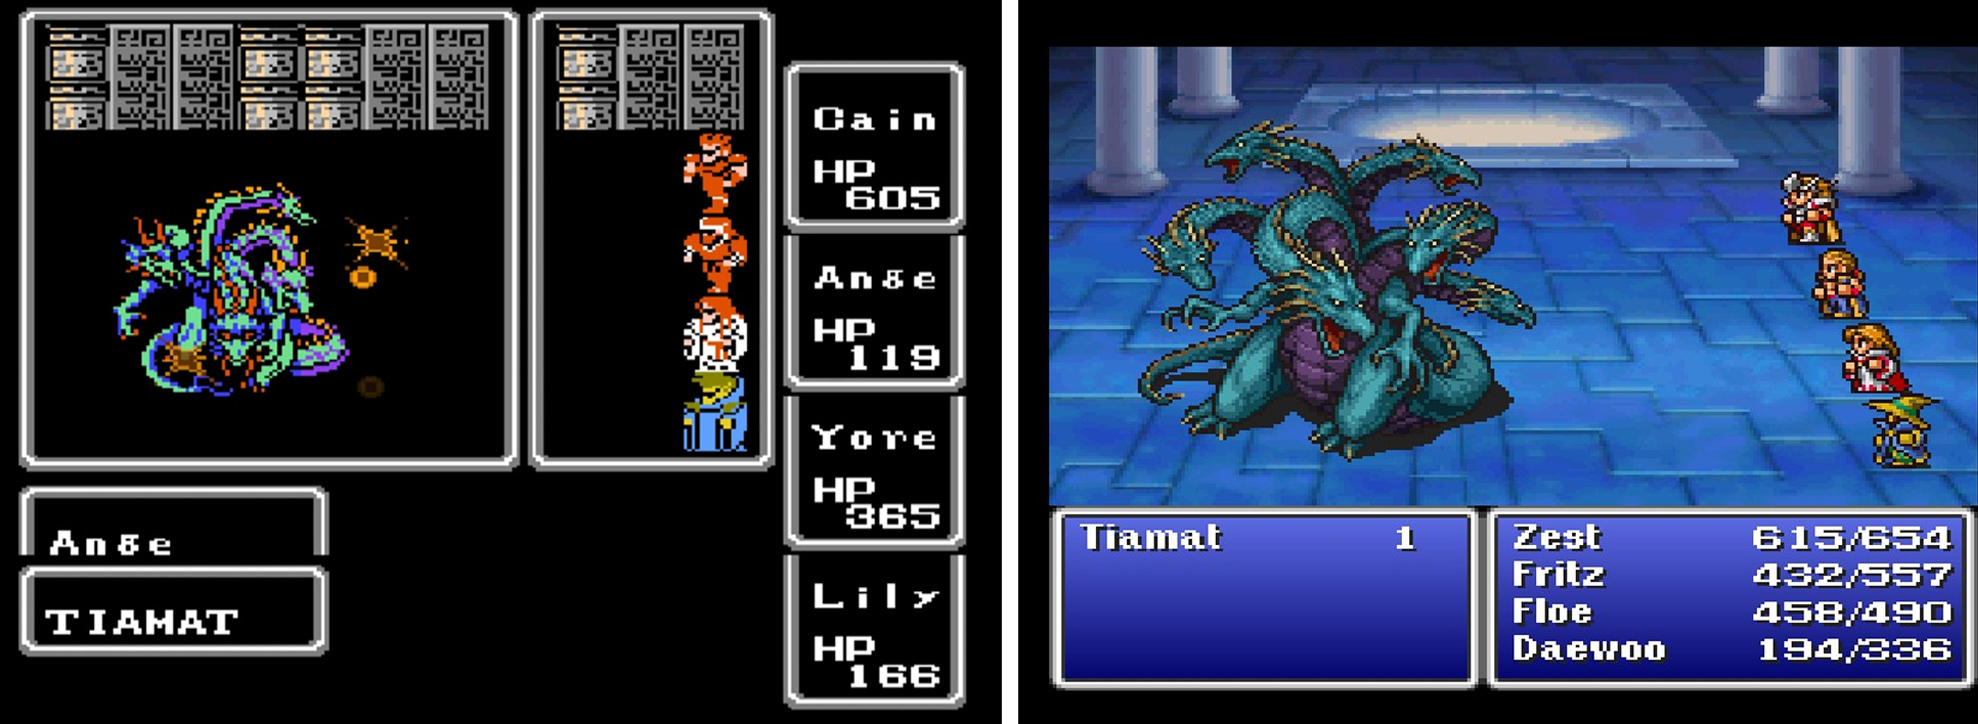 ff1 graphics comparison tiamat